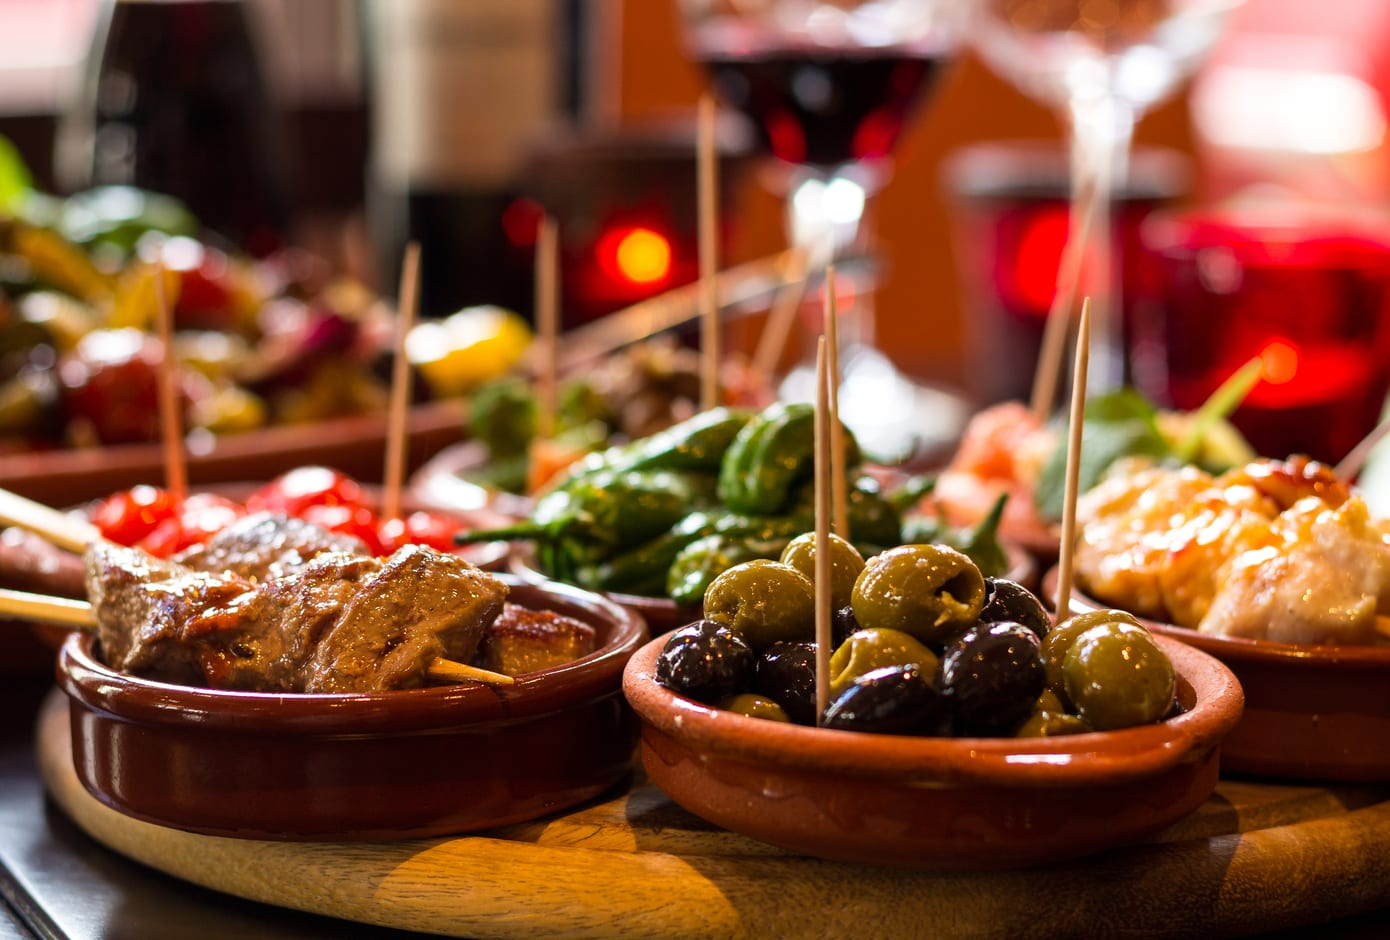 A selection of Spanish tapas.